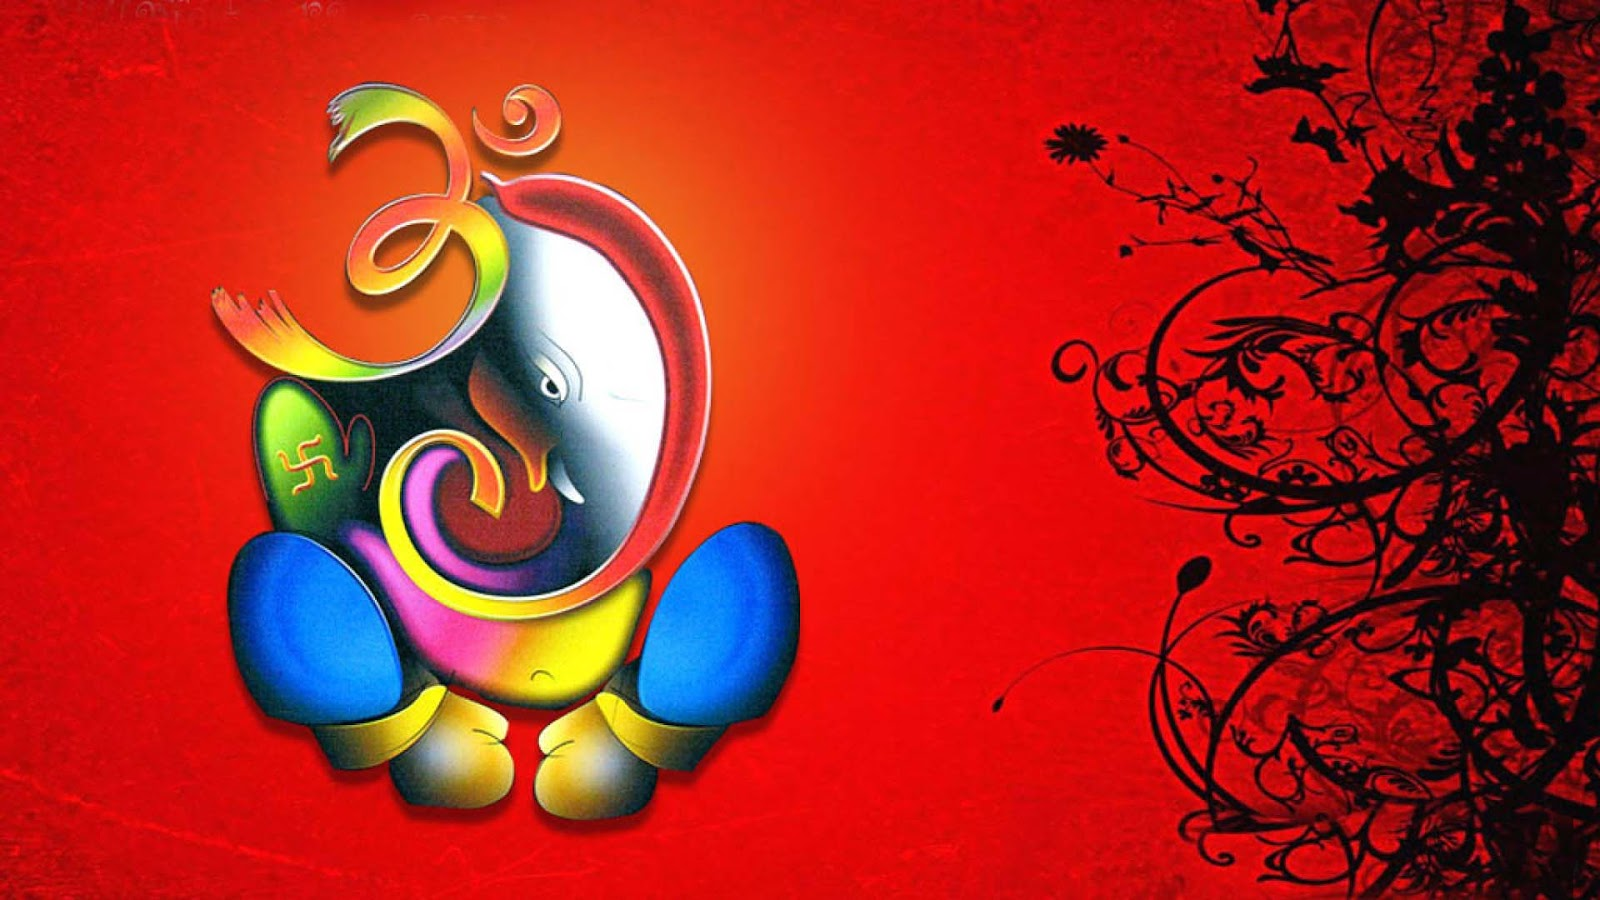 Lord Ganesha Hd Wallpapers: Lord Ganesha HD Wallpapers Free Download